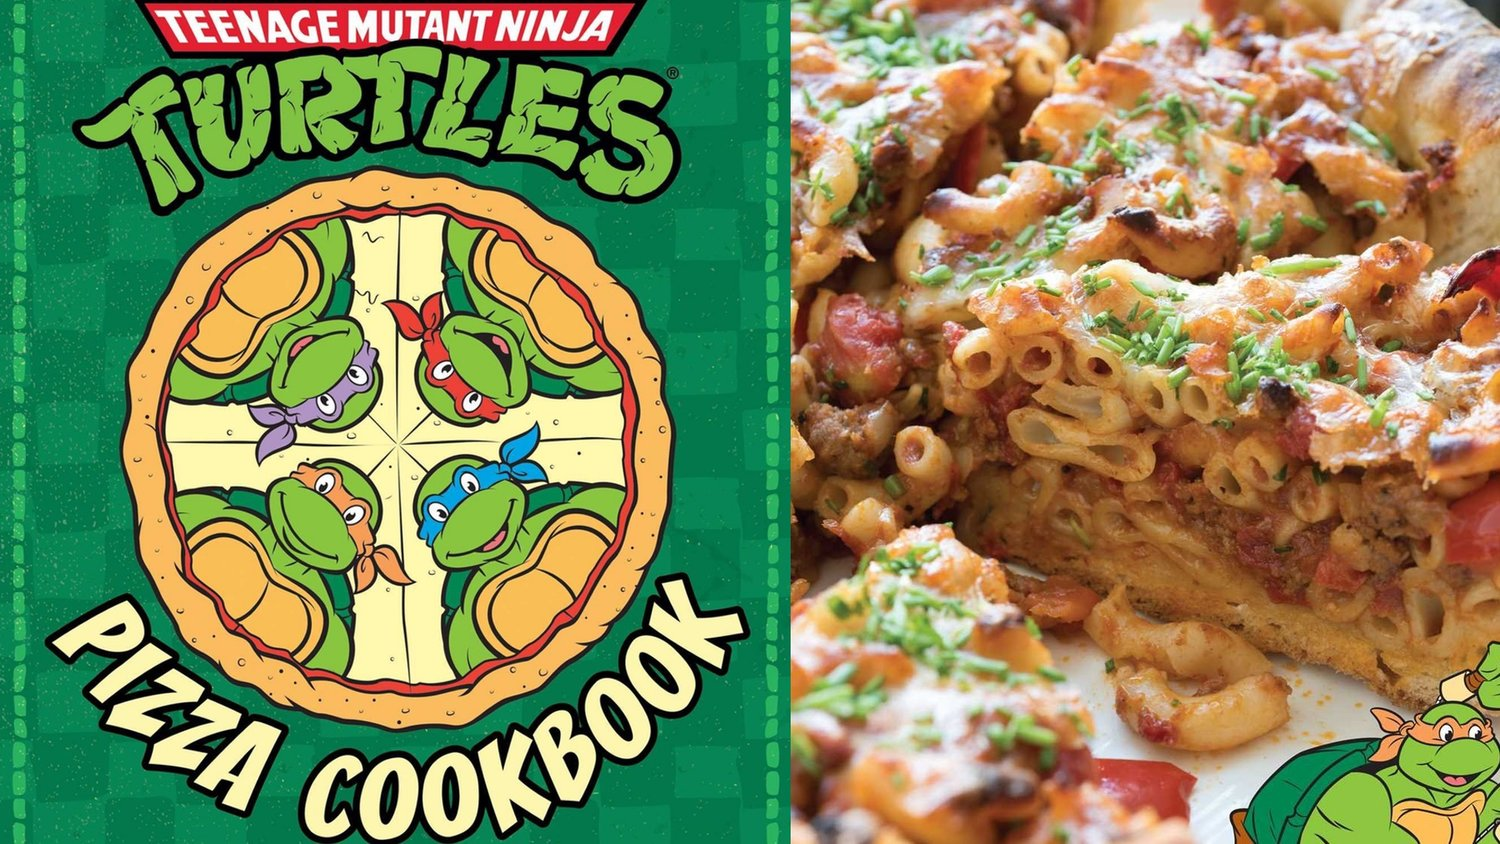 The TEENAGE MUTANT NINJA TURTLES Pizza Cookbook Has Some Crazy Recipes